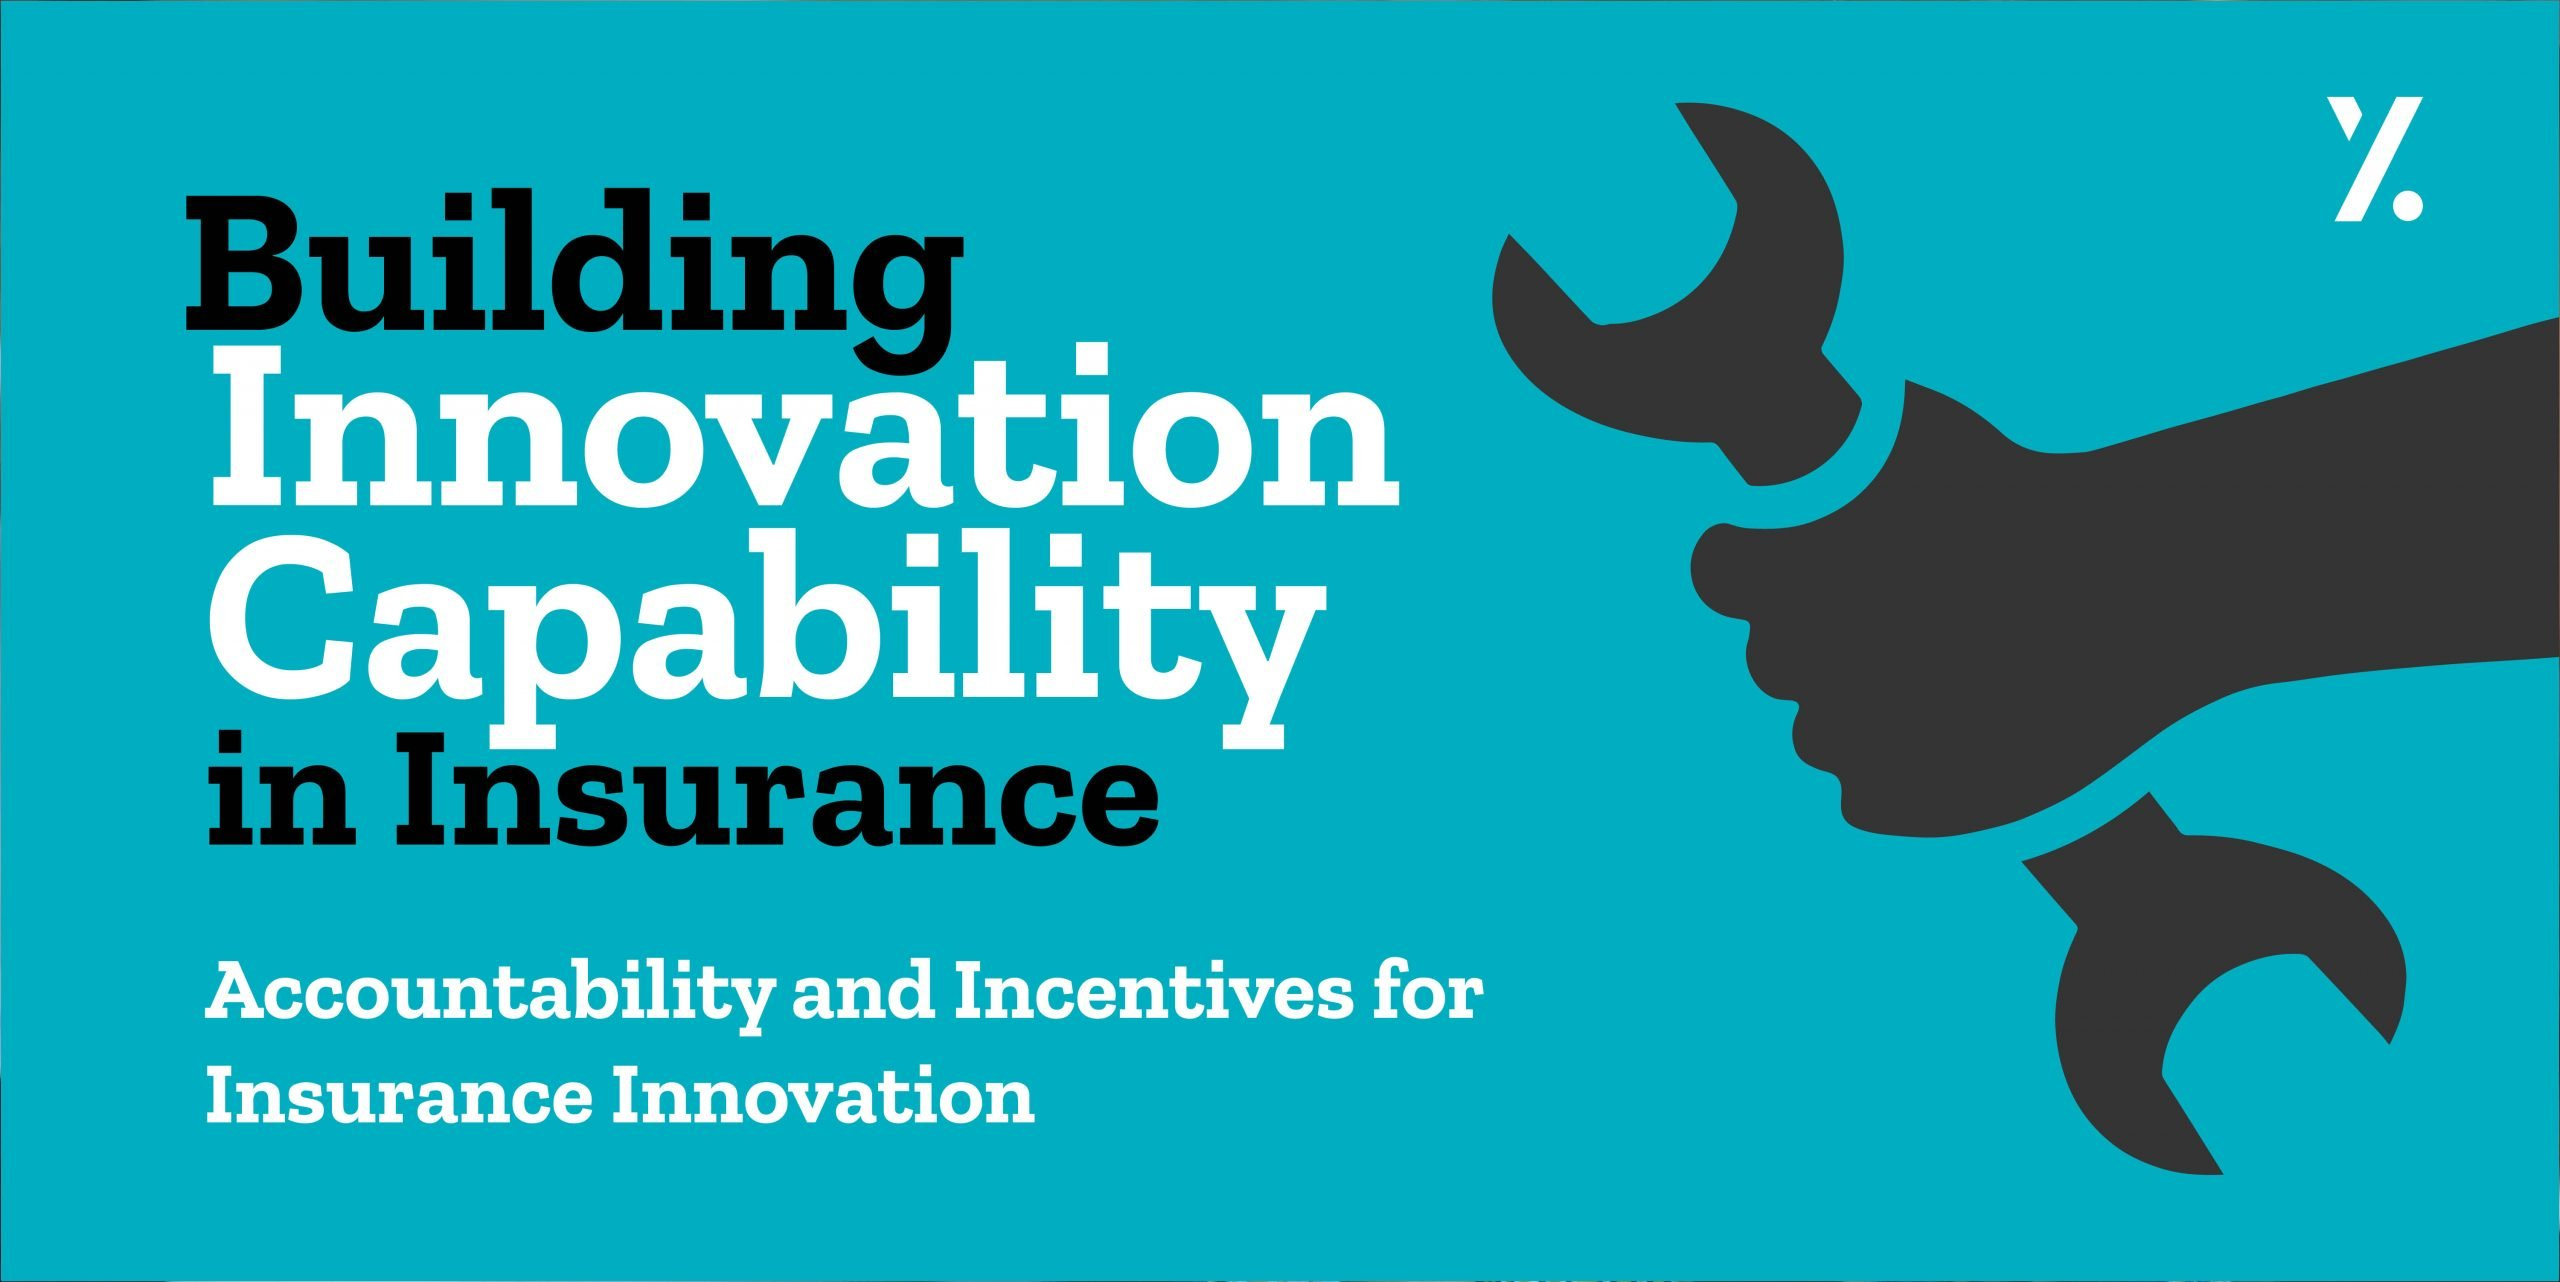 Building Insurance Innovation Capability Series Part 2